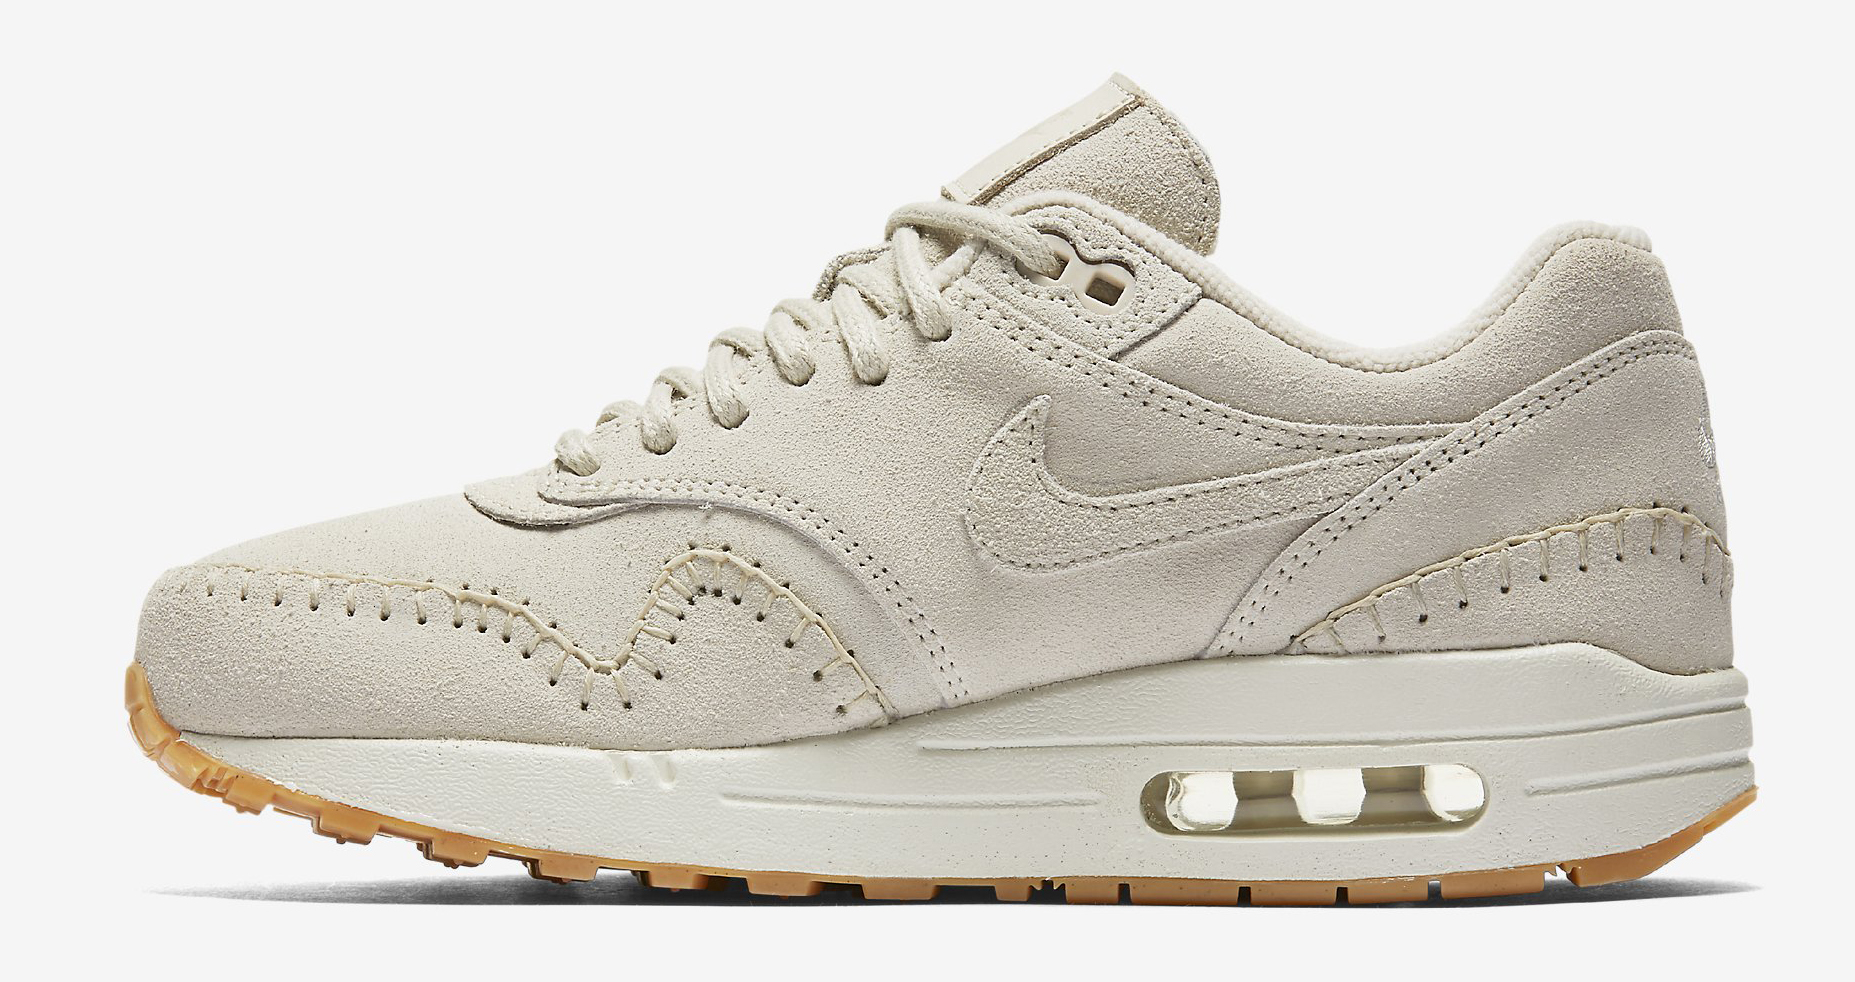 Nike Air Max 1 Sherpa Cream 454746-204 Medial